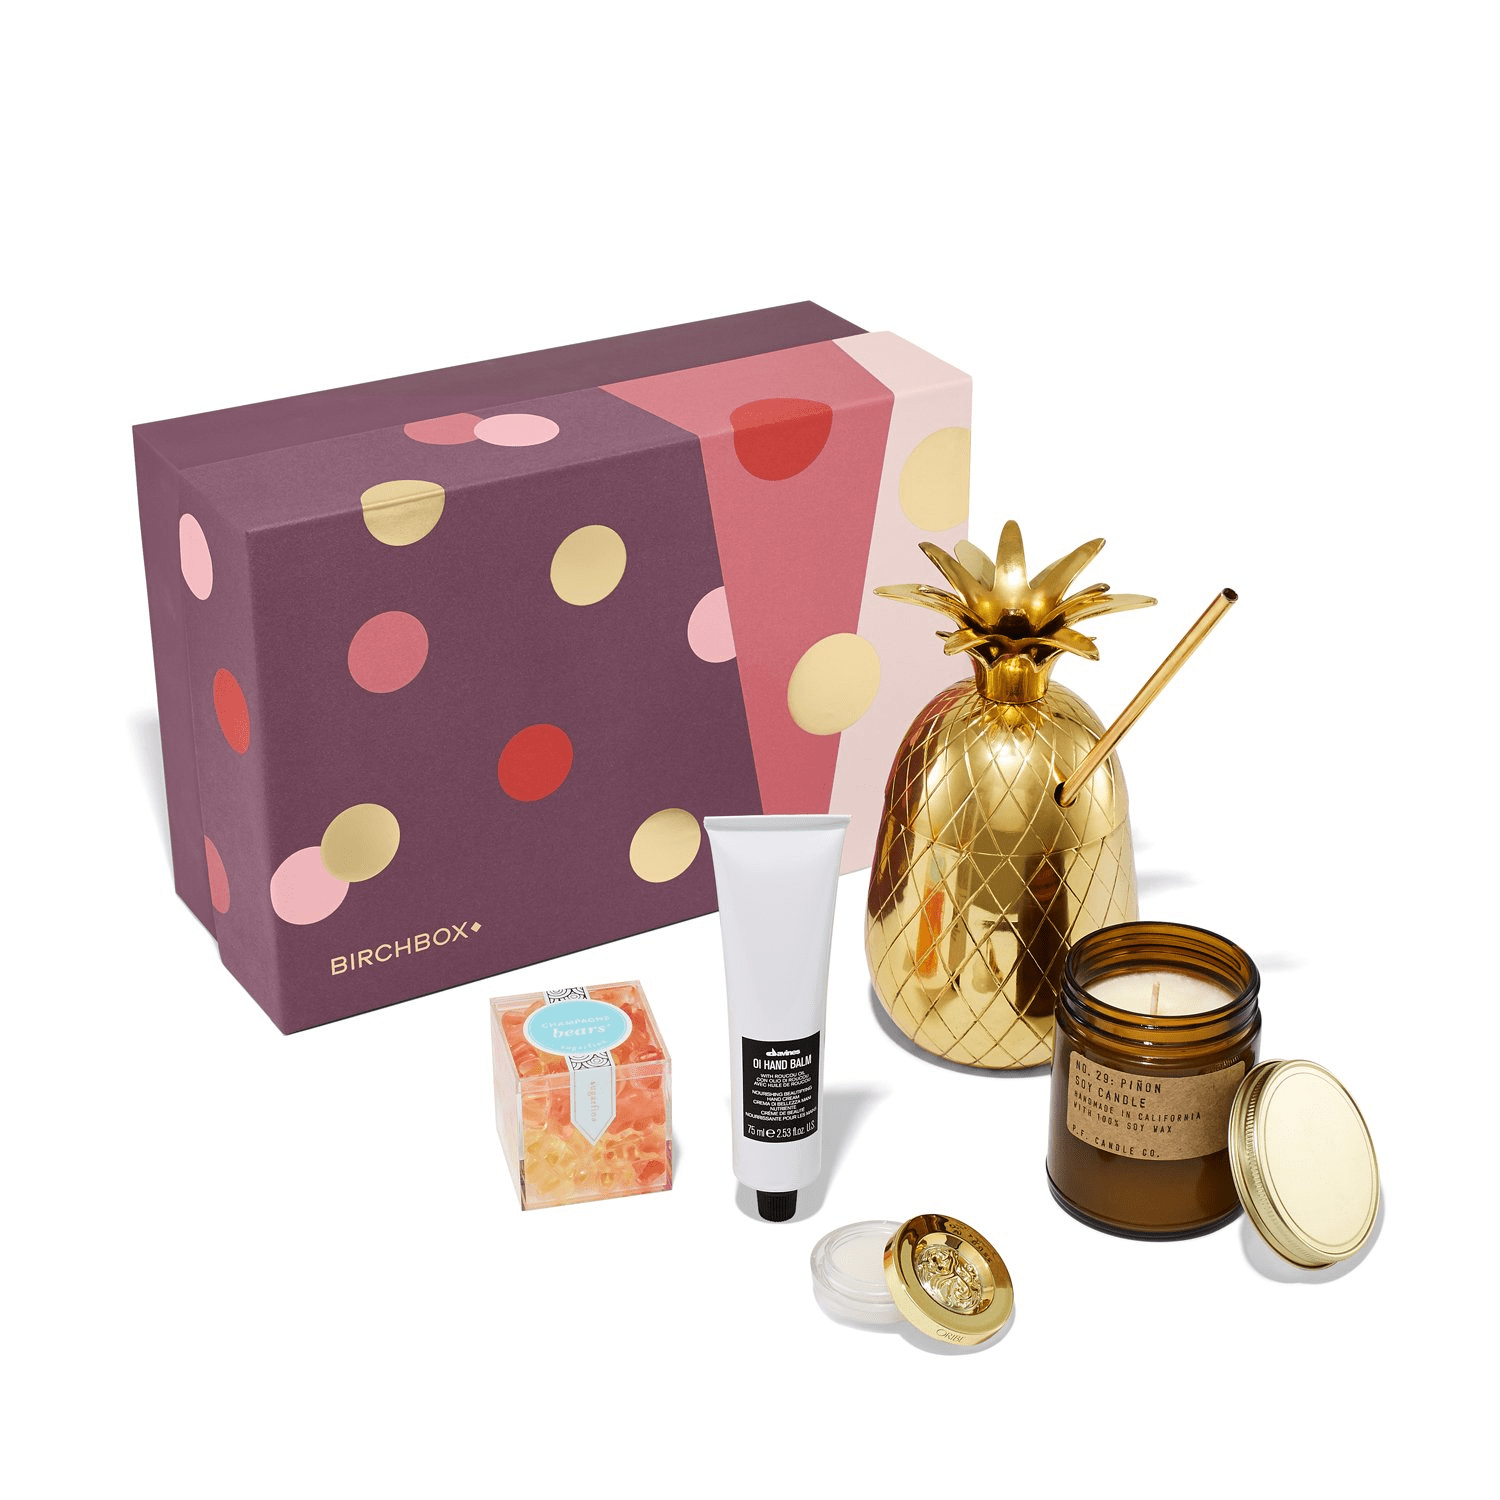 Birchbox Limited Edition A Toast to the Host Box Back In Stock + Coupon!